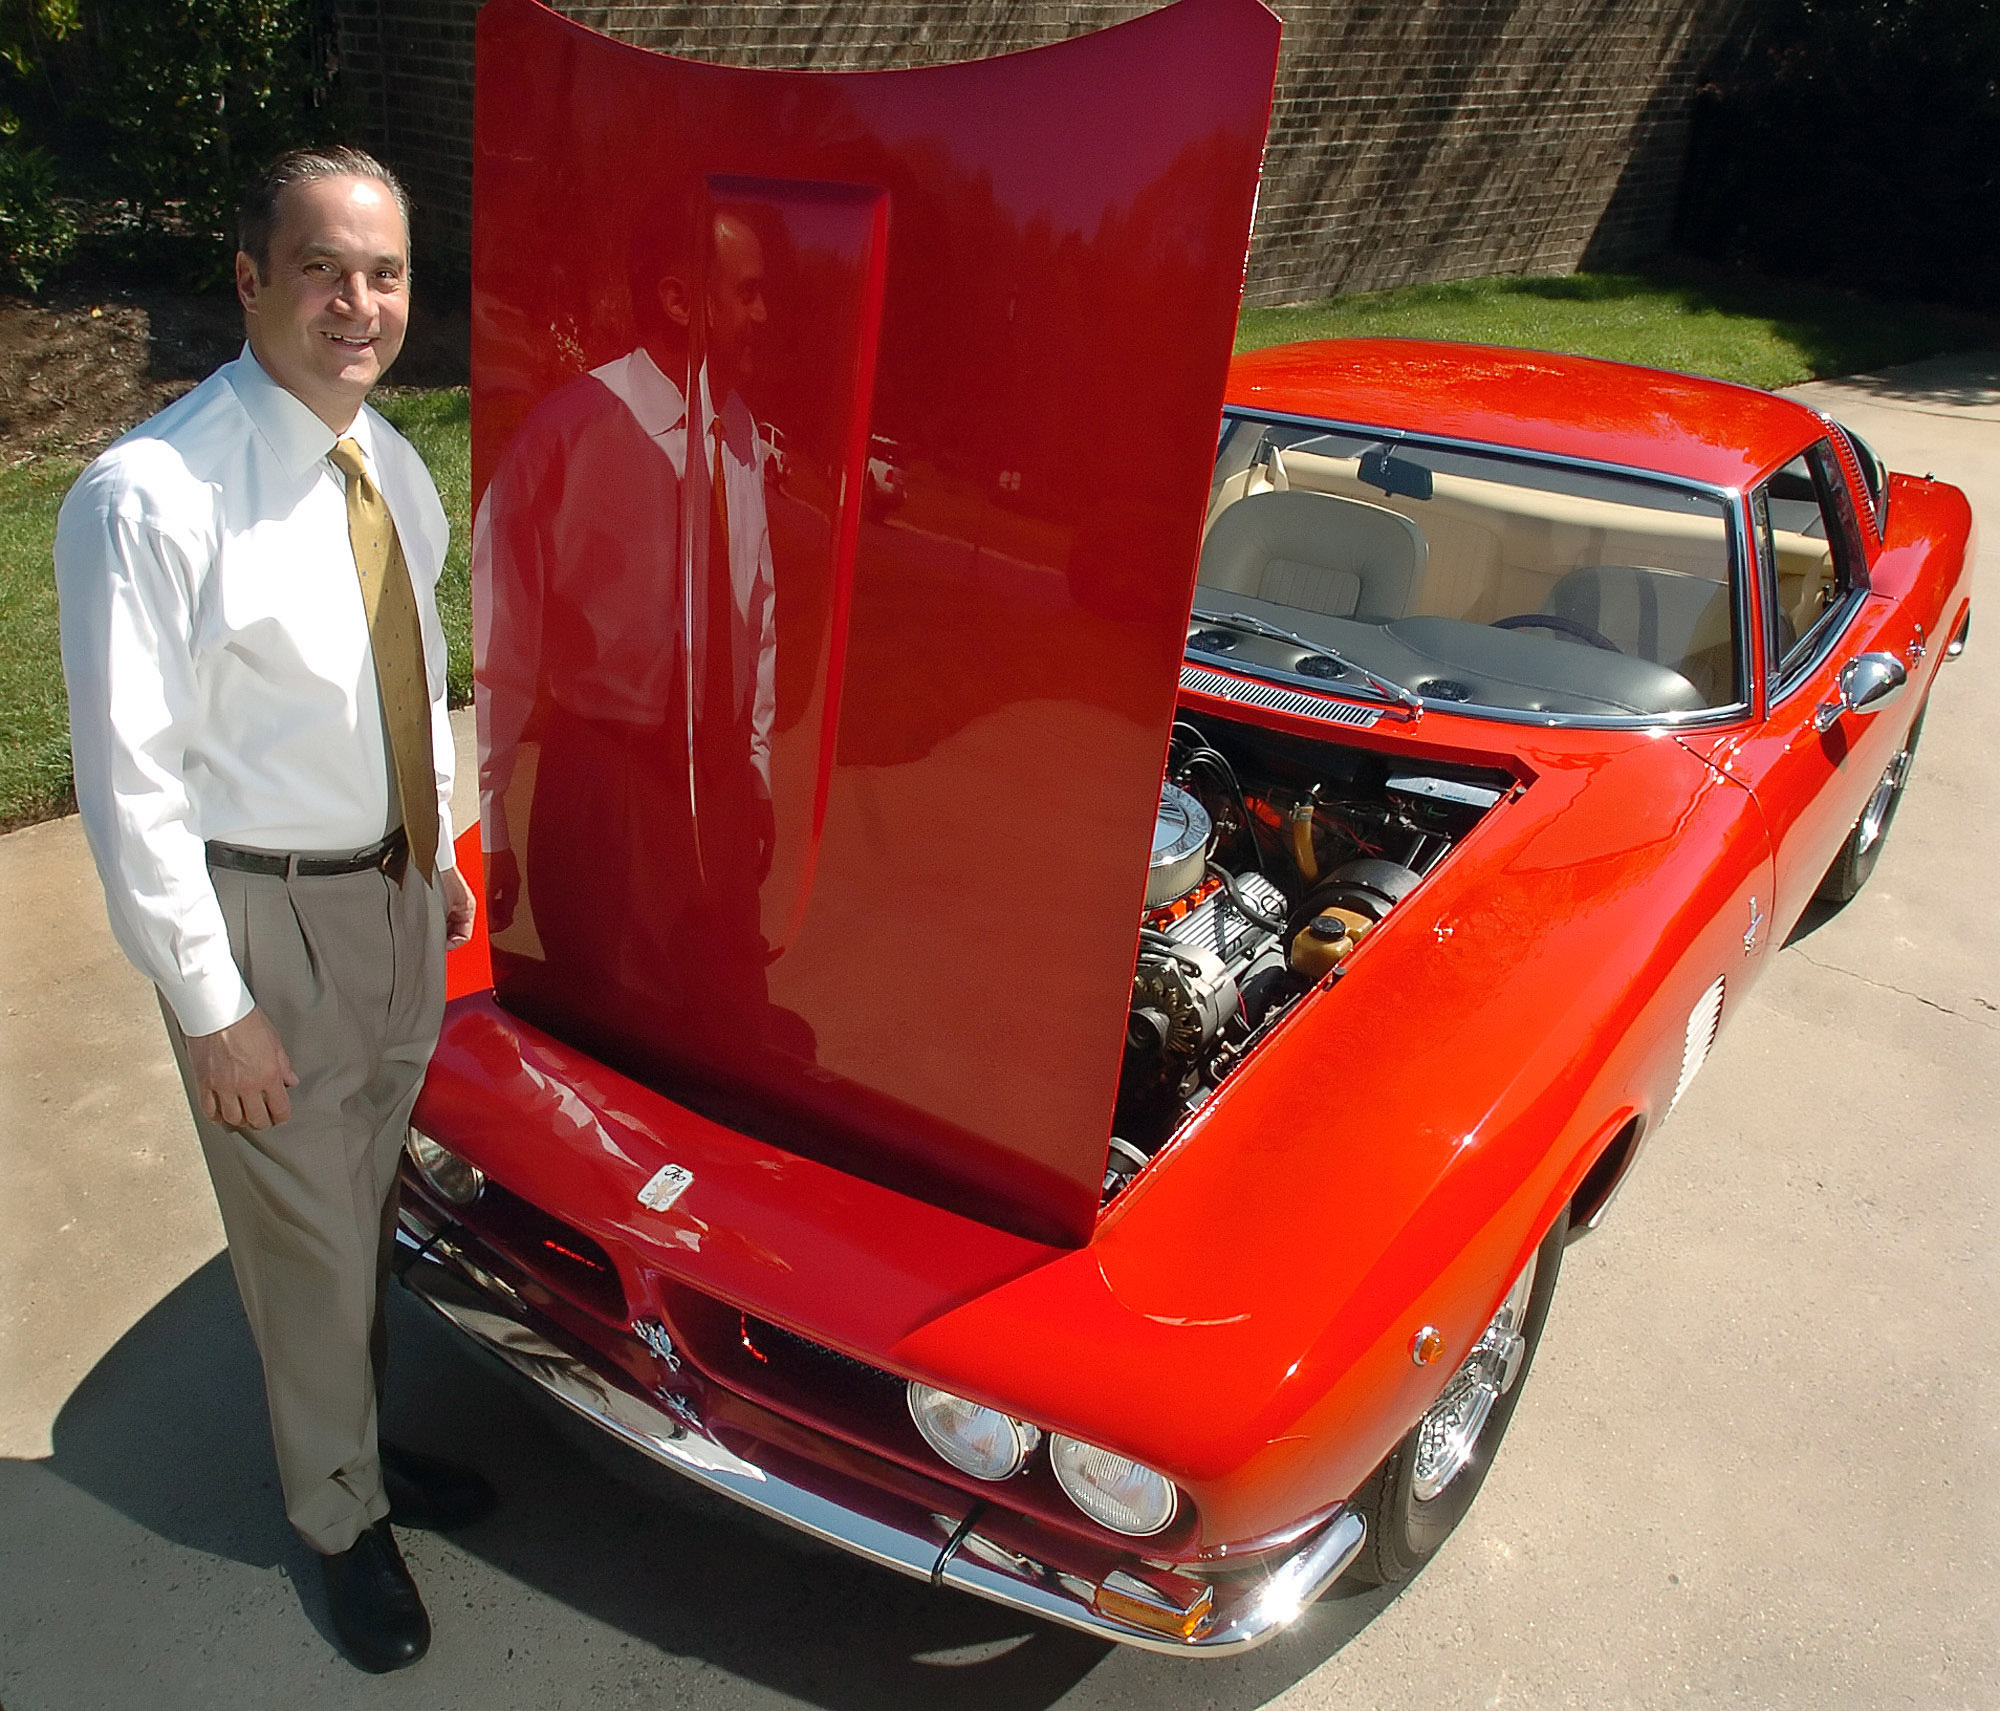 Darren Frank and his car | Diedra Laird / Charlotte Observer photover.com